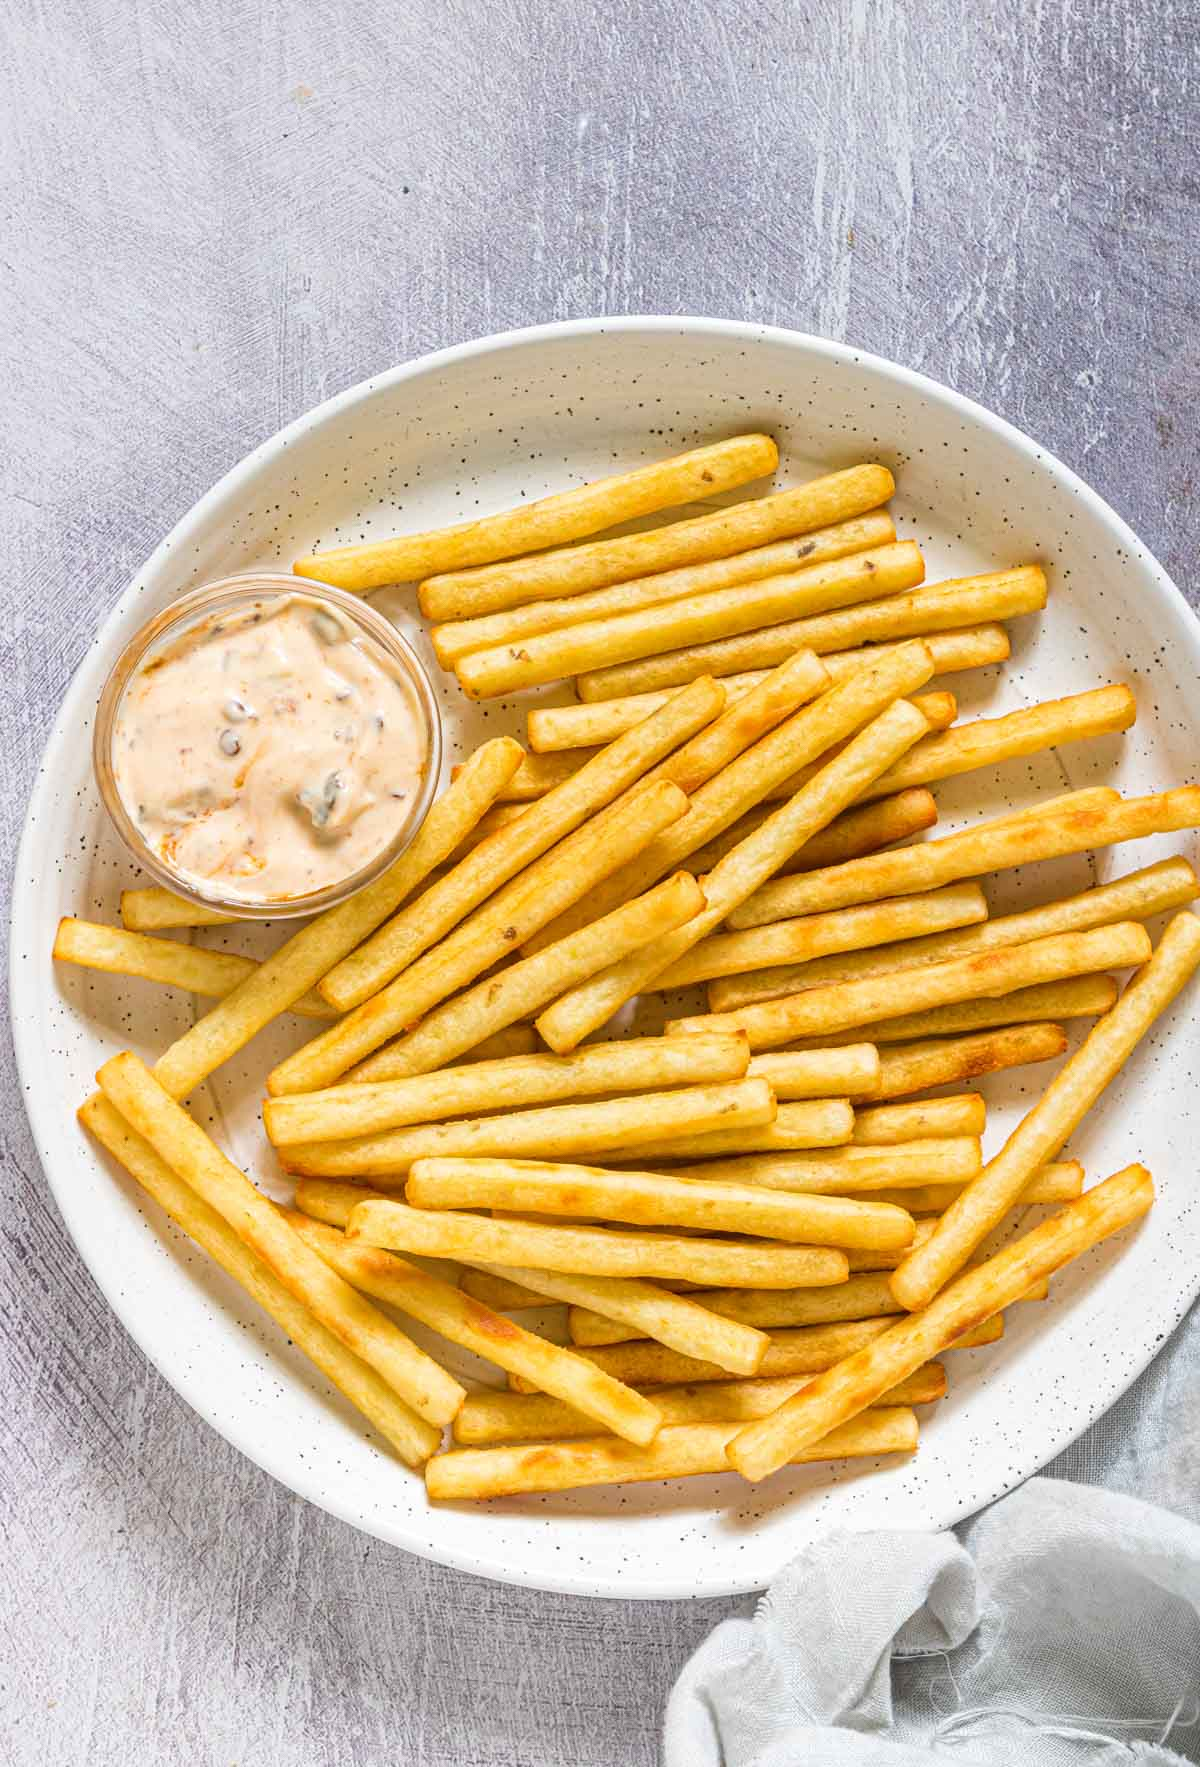 a plate of french fries served with a dish of chipotle aioli dipping sauce